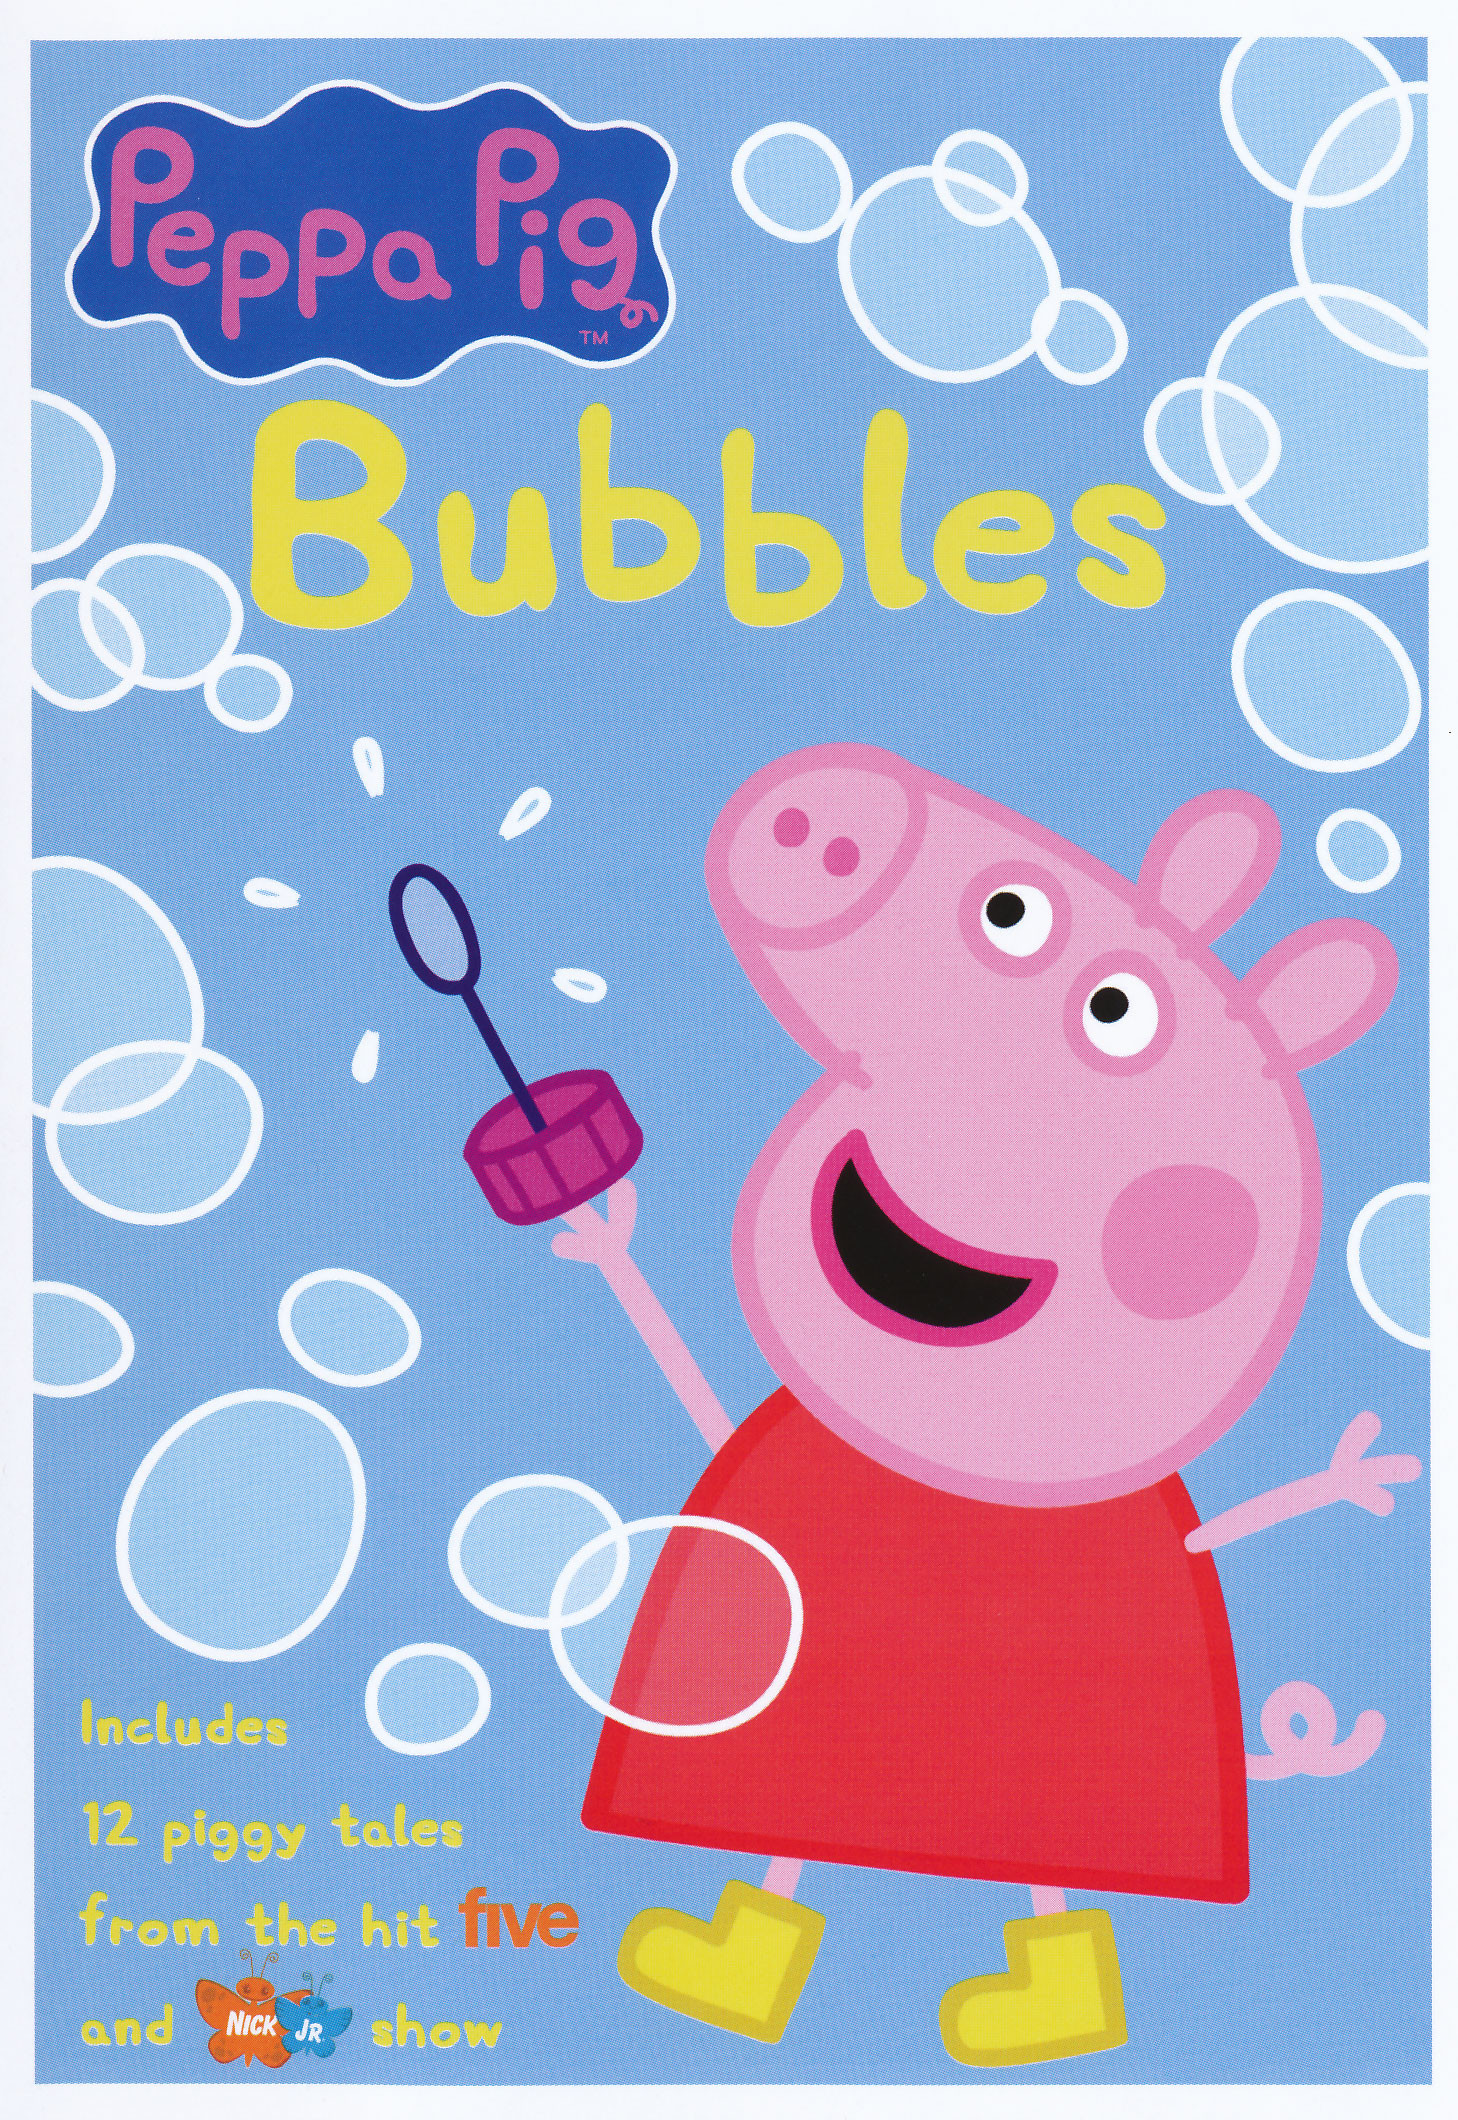 Peppa Pig (TV Series ) - IMDb